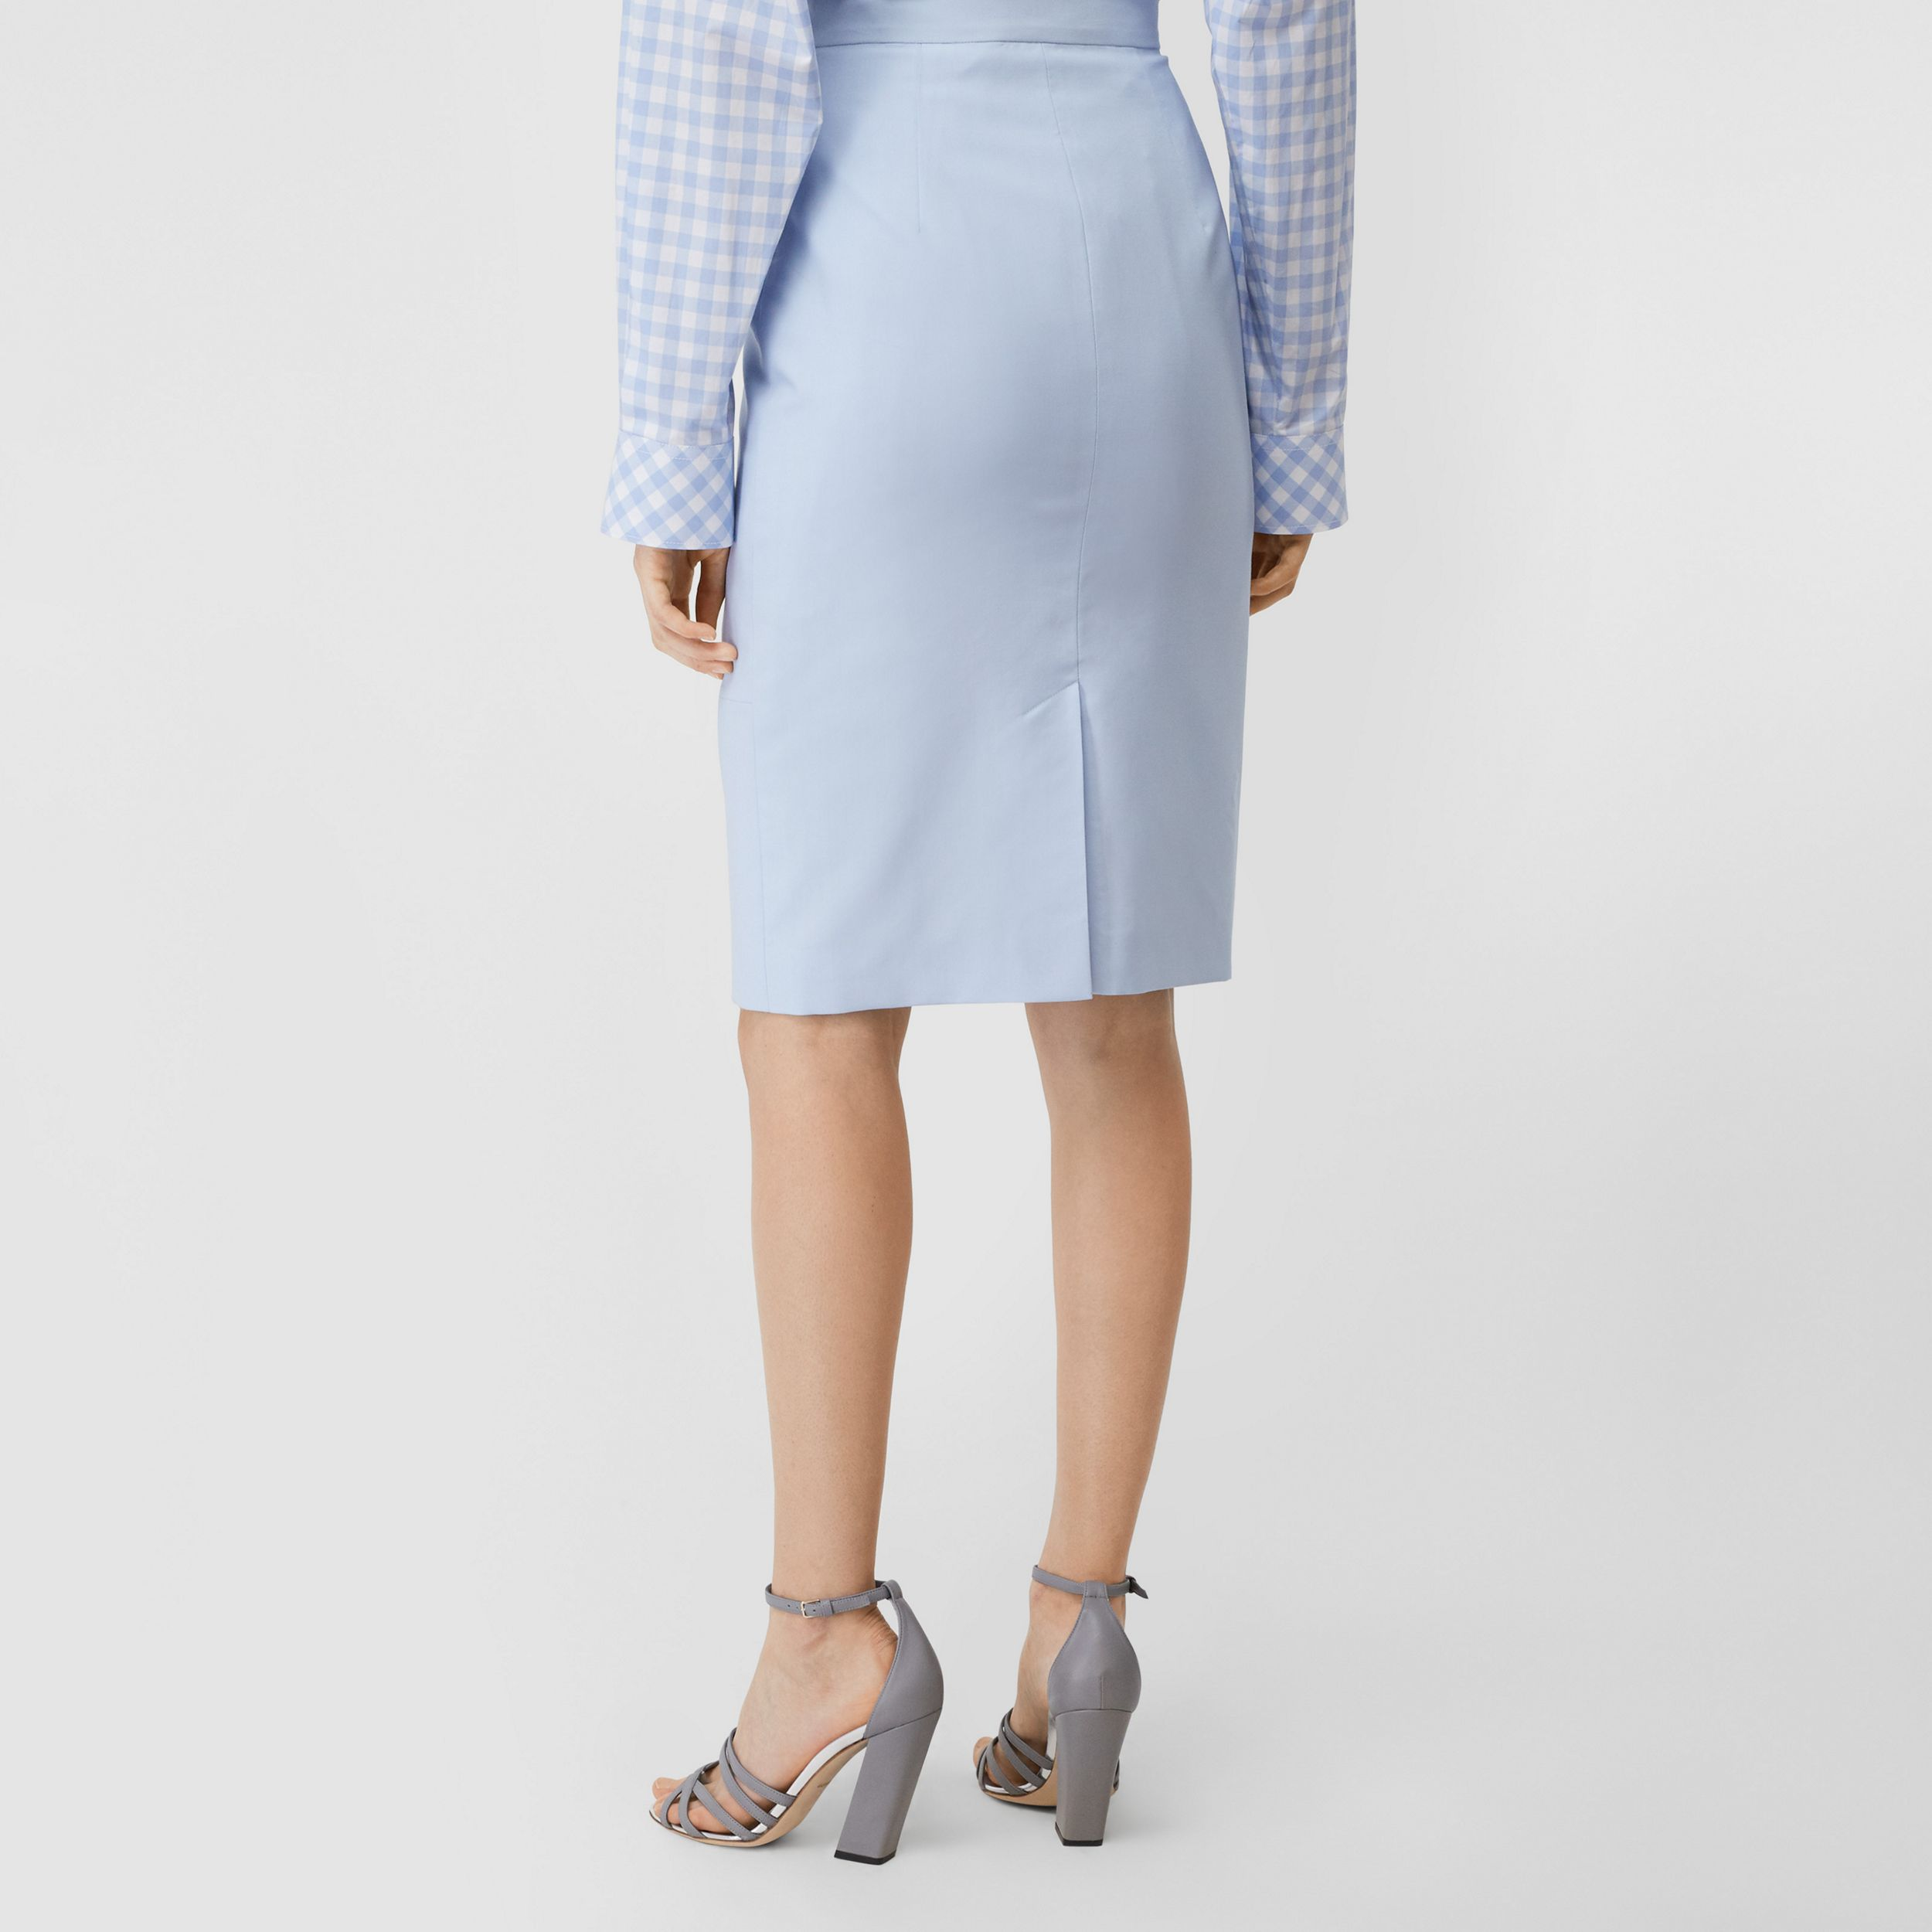 Wool Canvas Step-through Pencil Skirt in Pale Blue - Women | Burberry Australia - 3